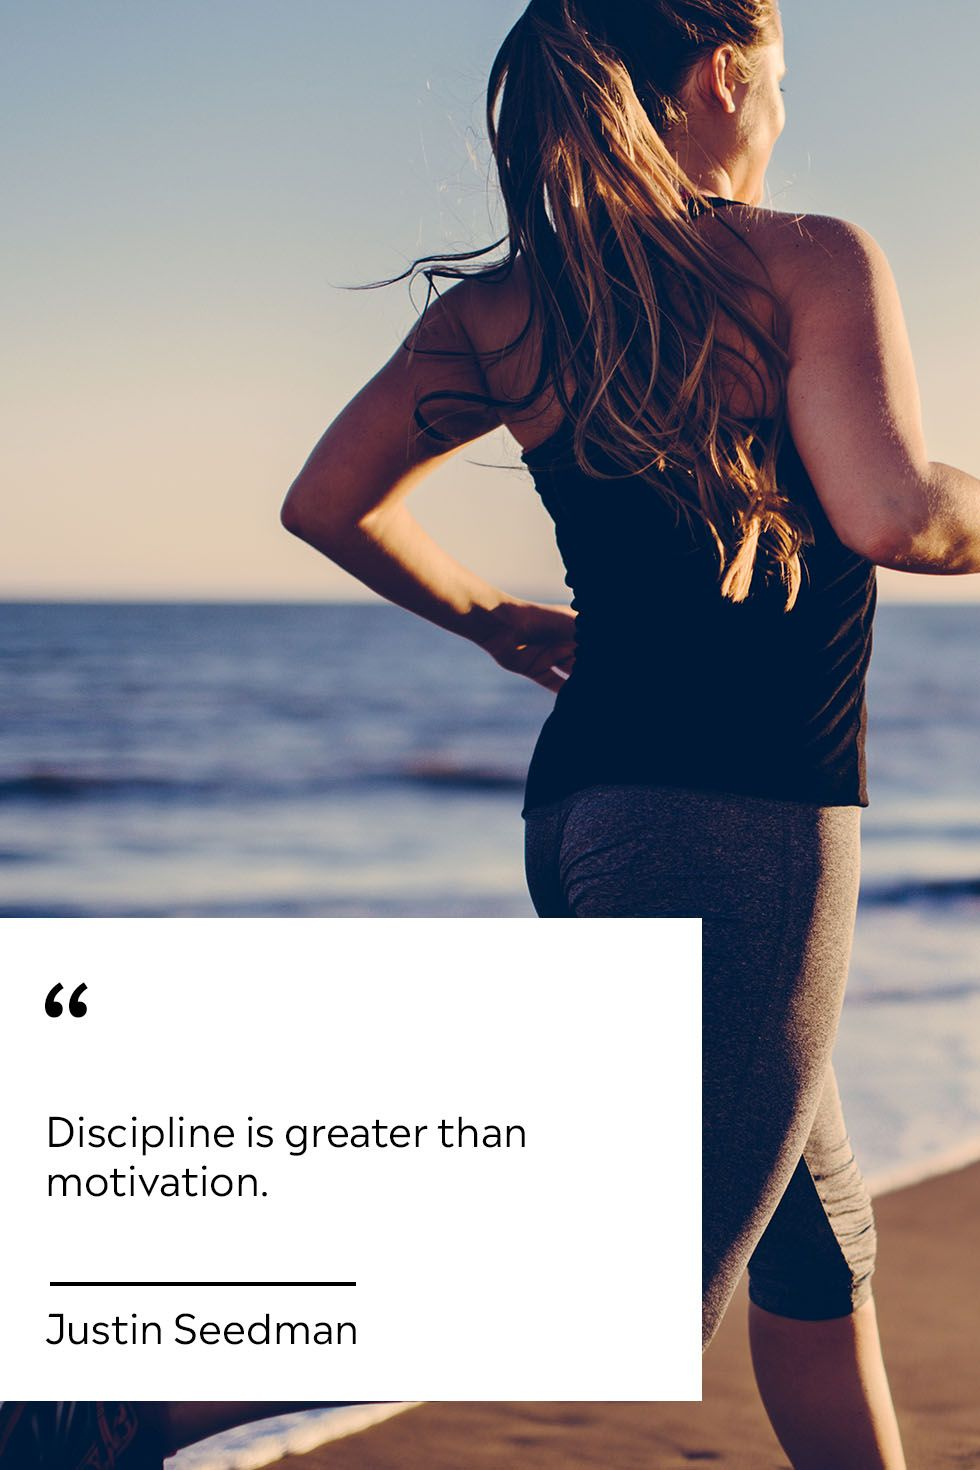 25 Weight Loss Quotes From Dietitians To Help You Stay Motivated